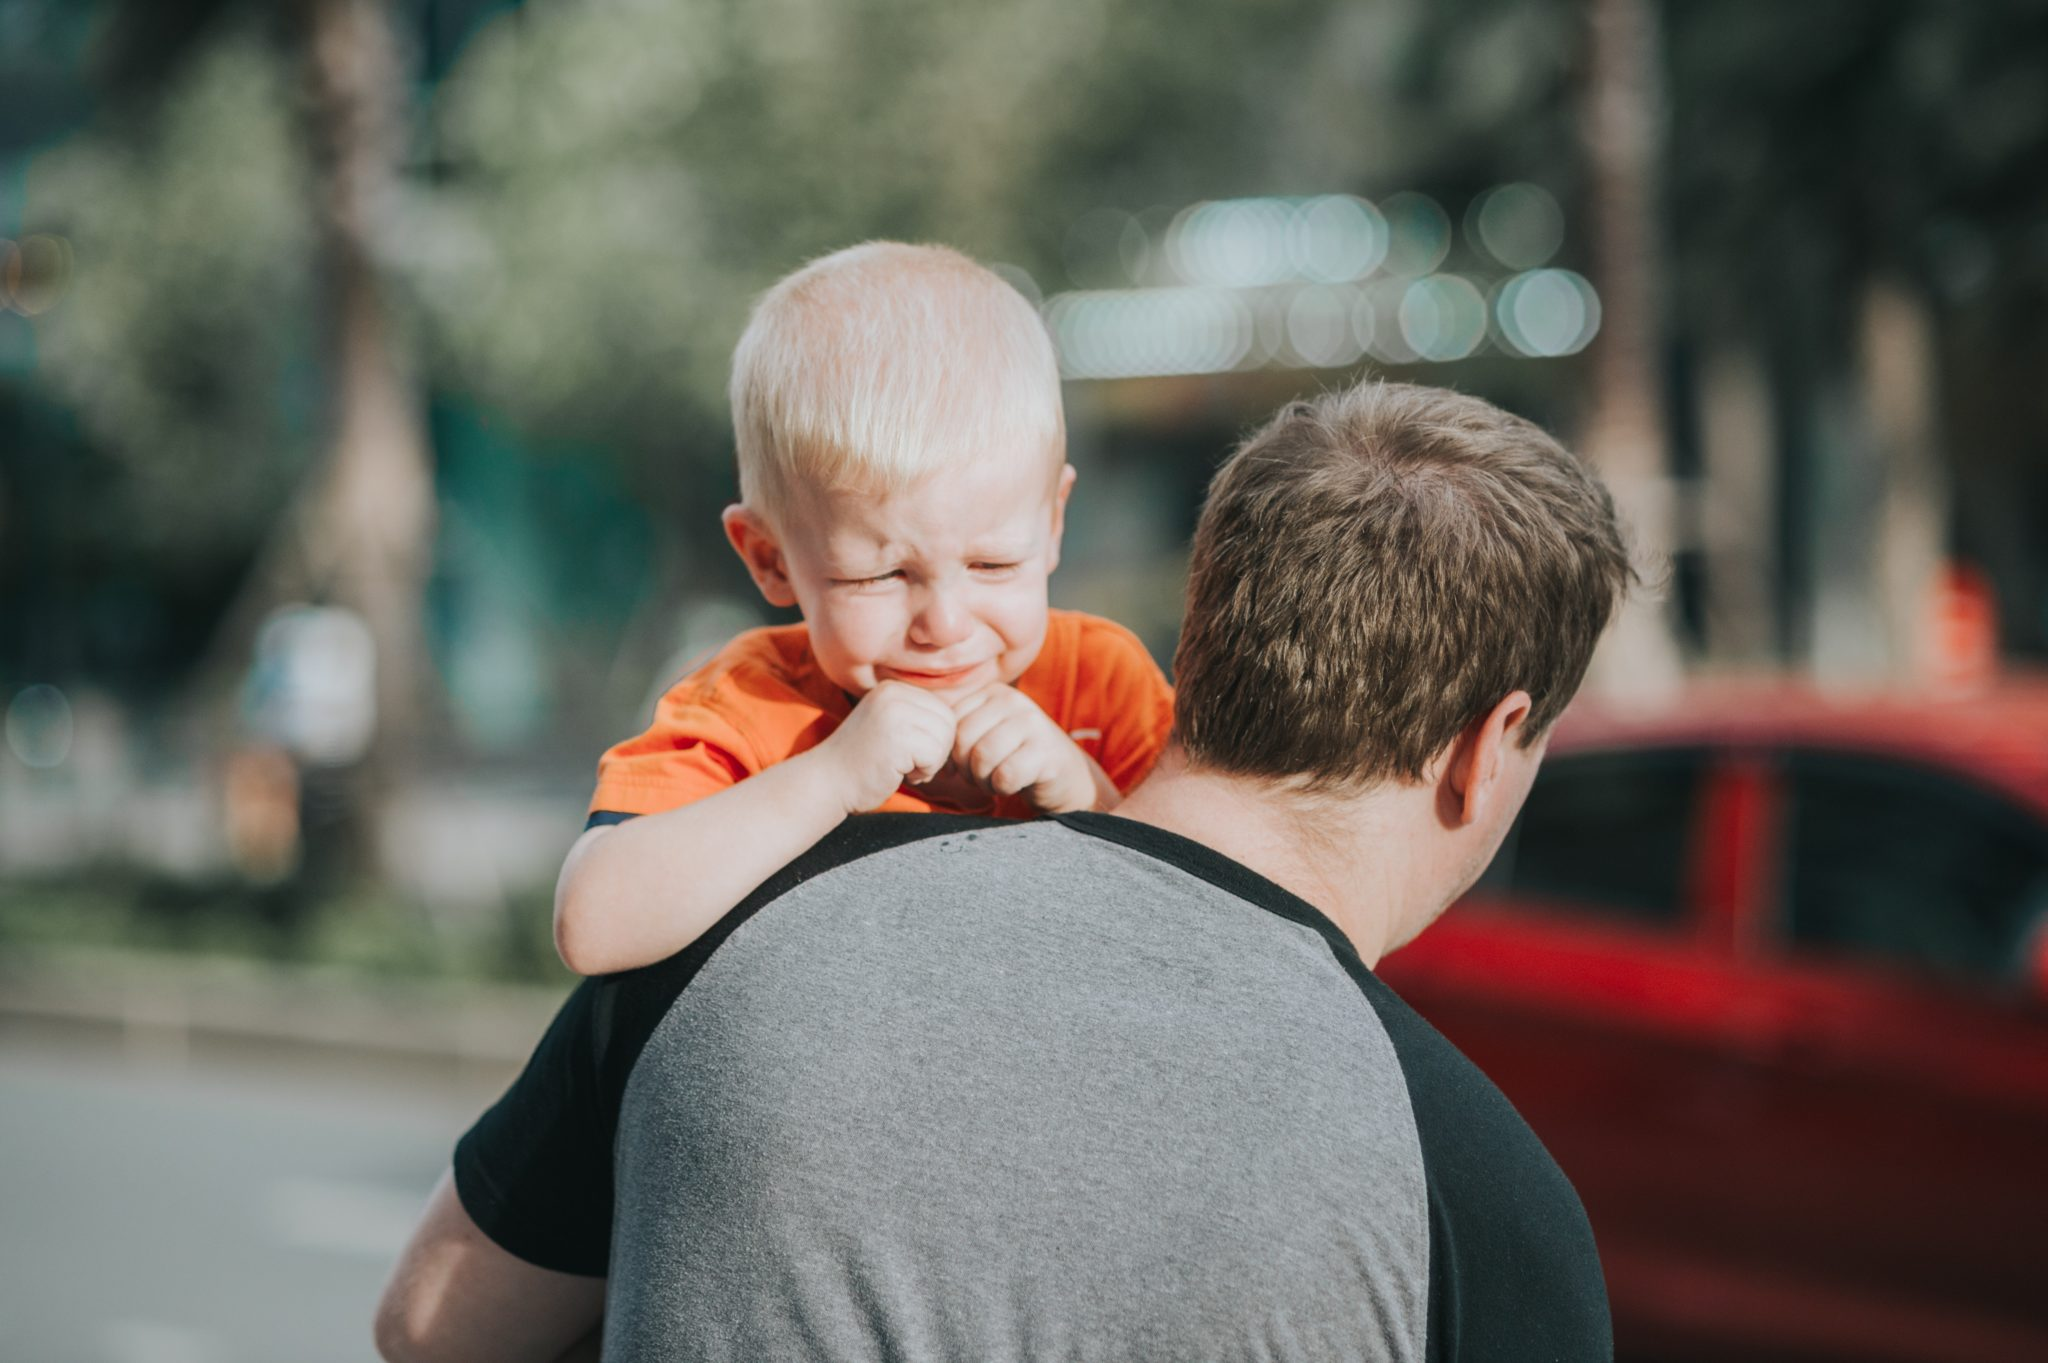 Round Rock Divorce Attorneys, how to talk to your kids about divorce.